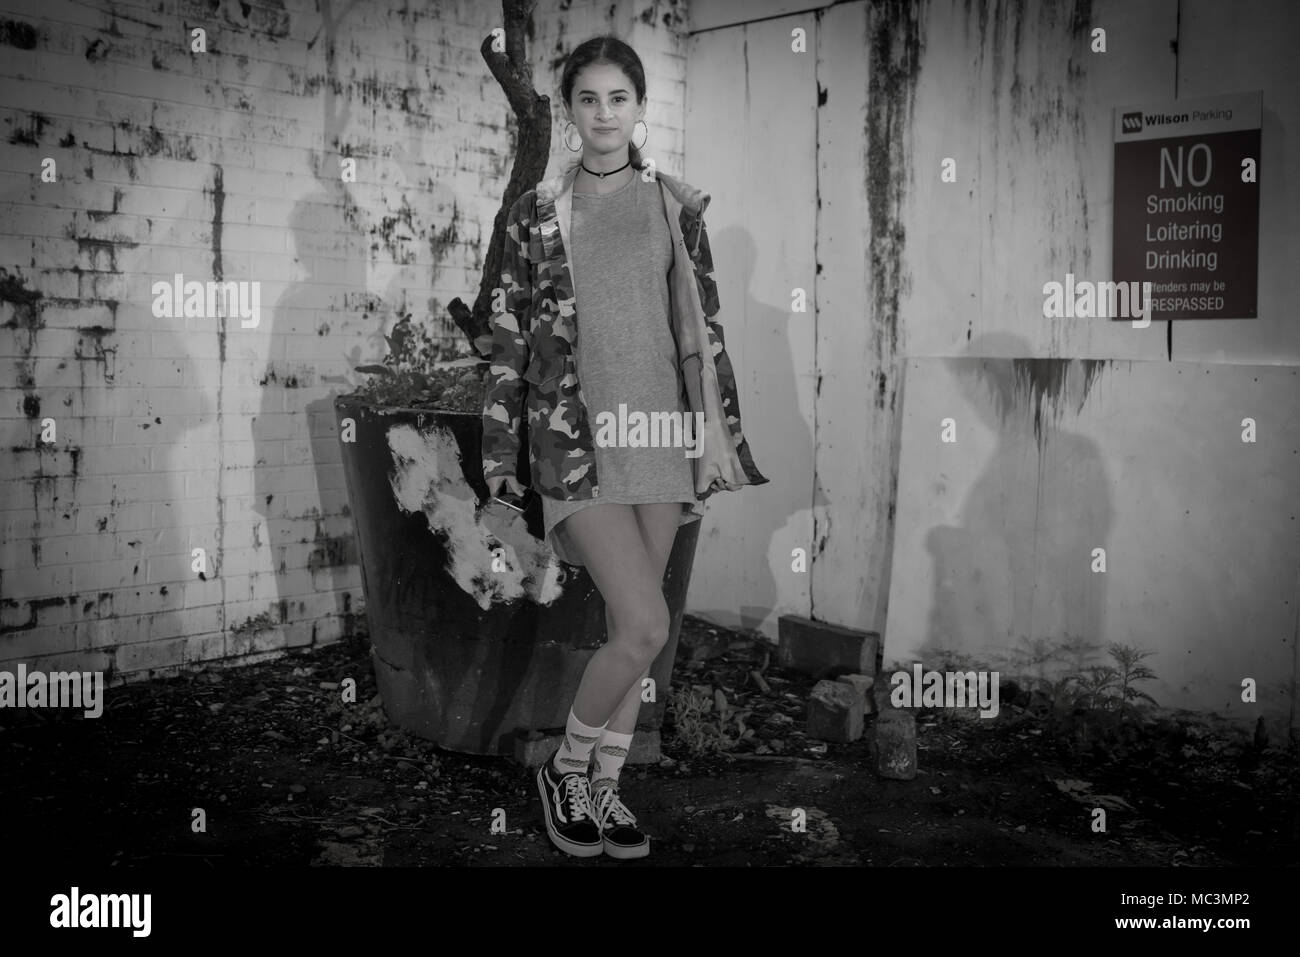 AUCKLAND, NEW ZEALAND - MARCH 25, 2018; Deadpan night scene Grainy dark image girl smiling standing in front grungy wall in monochrome with No loiteri - Stock Image